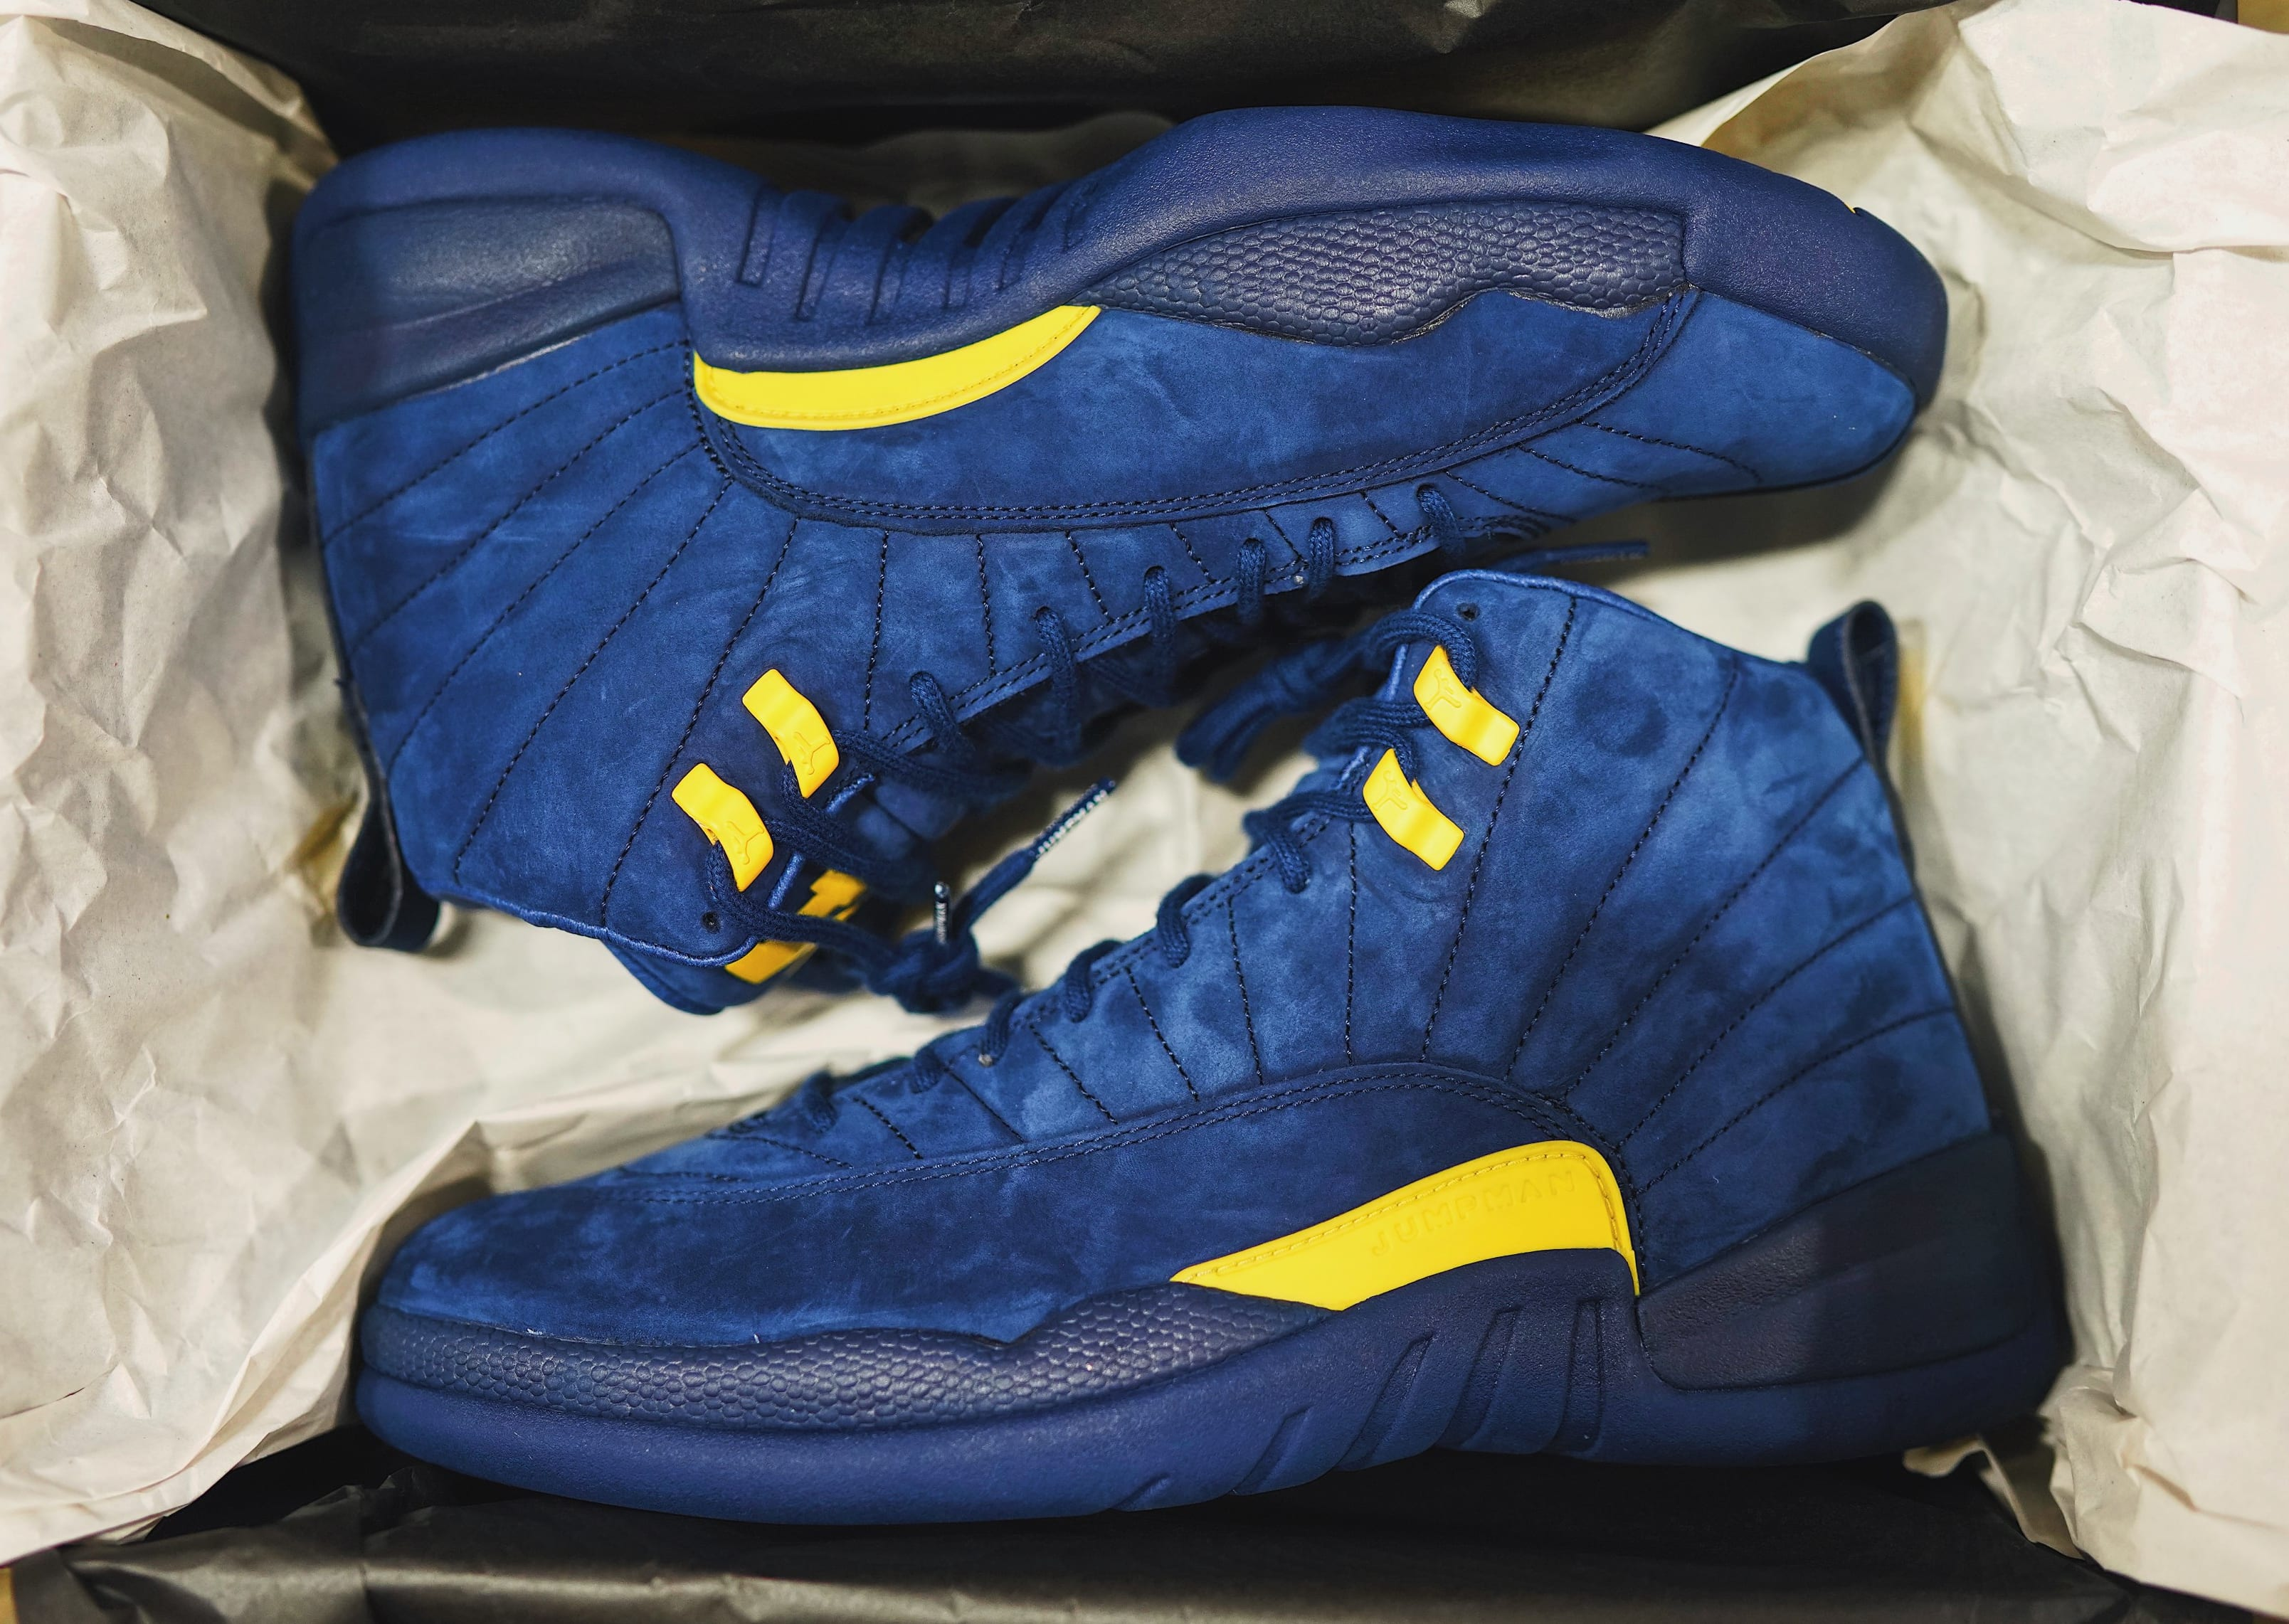 Air Jordan 12 'Michigan' BQ3180-407 (Pair)